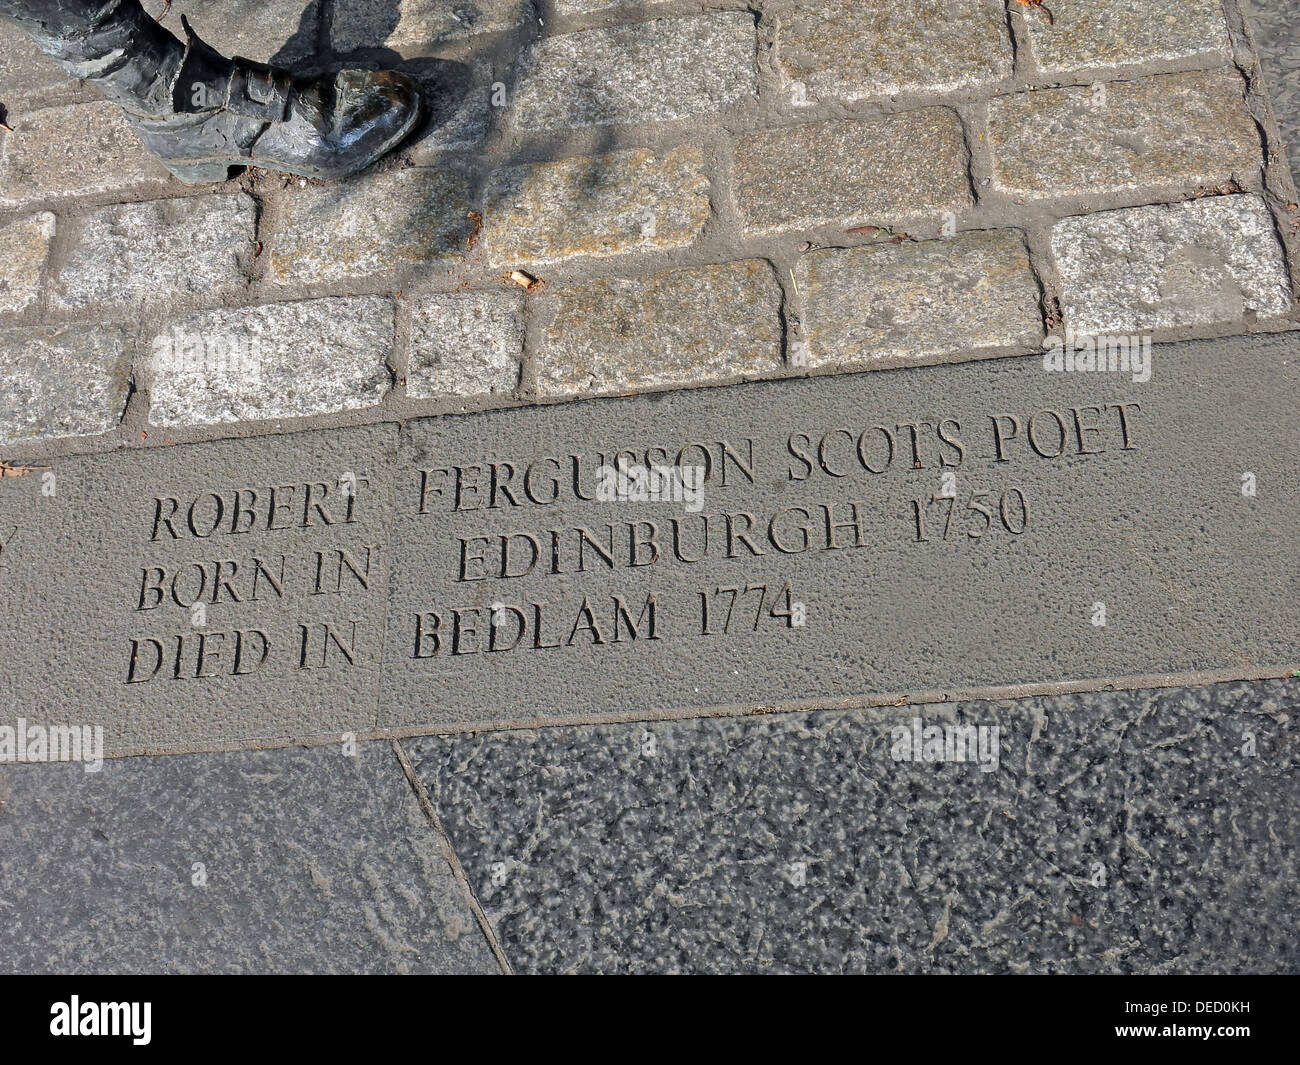 Robert Fergusson Scots Poet bronze Statue from the canongate Edinburgh Royal Mile. - Stock Image